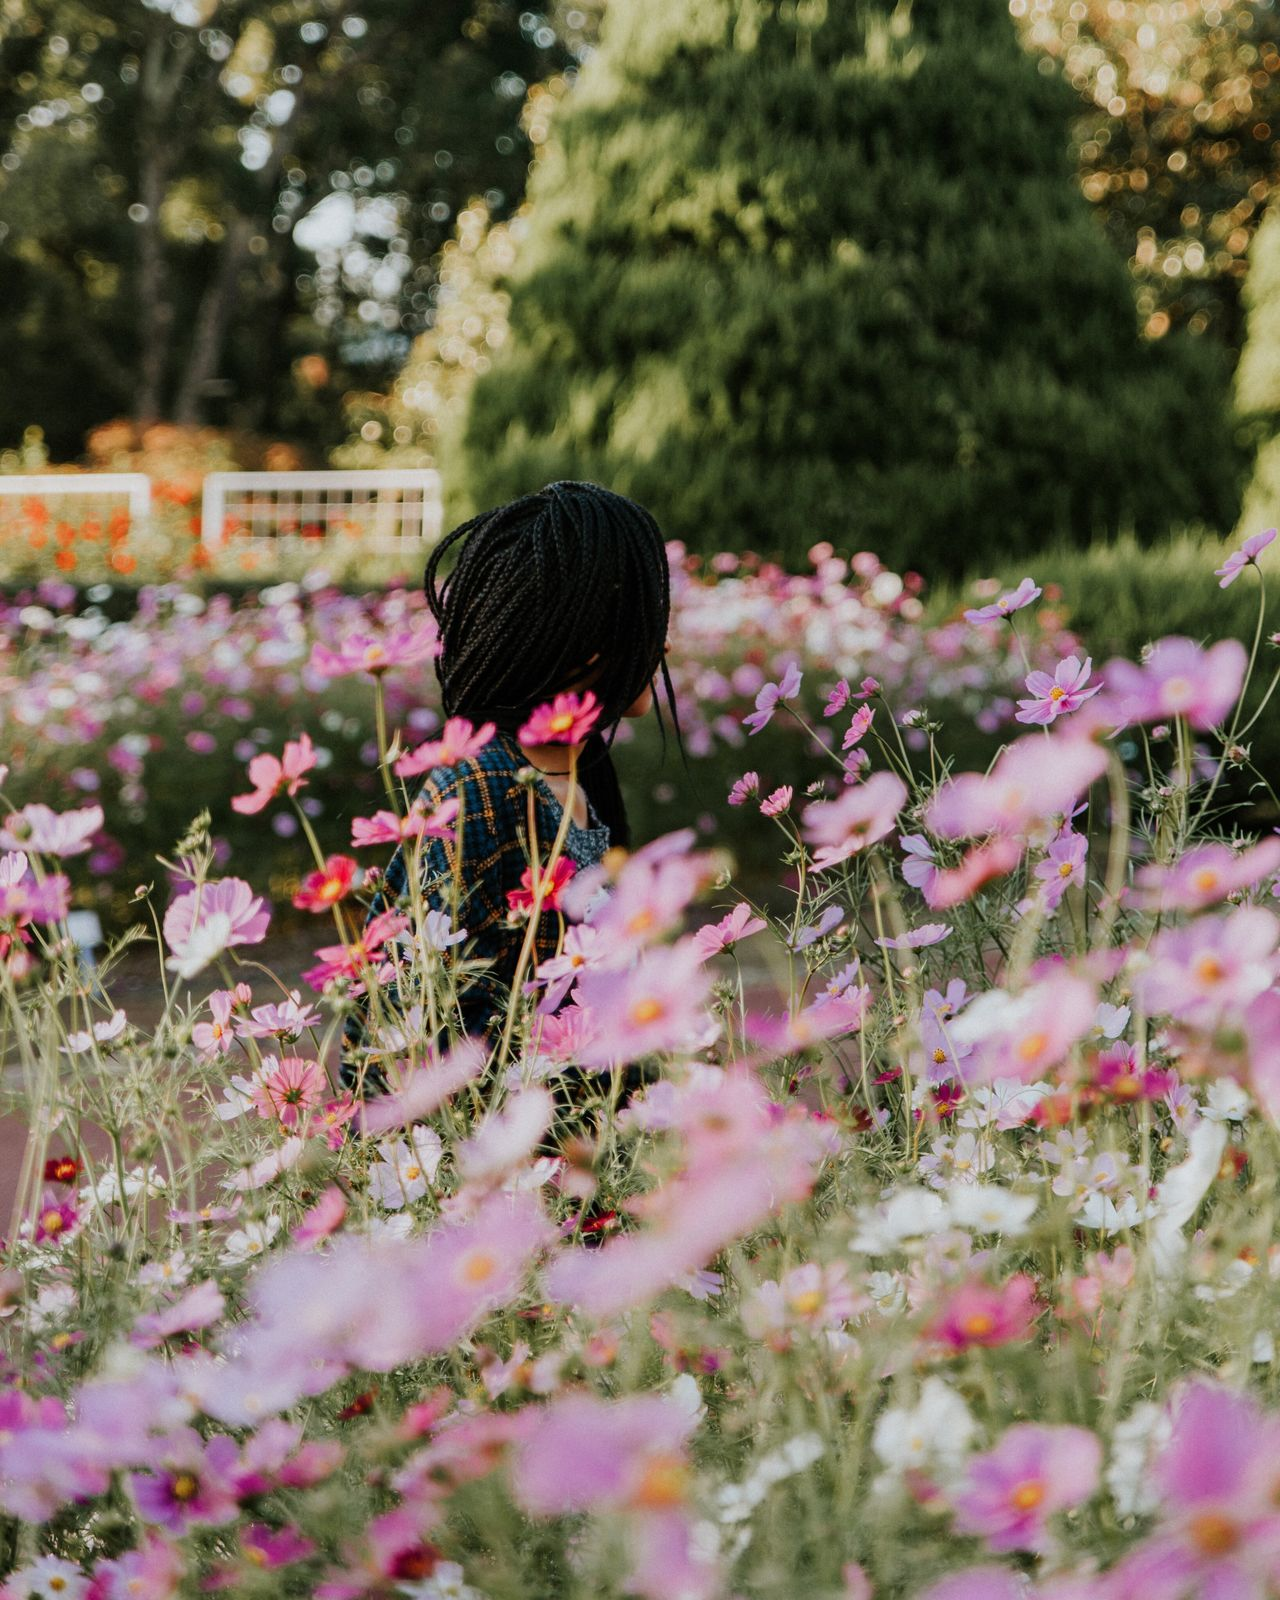 Woman sitting amidst pink flowers blooming on field in park